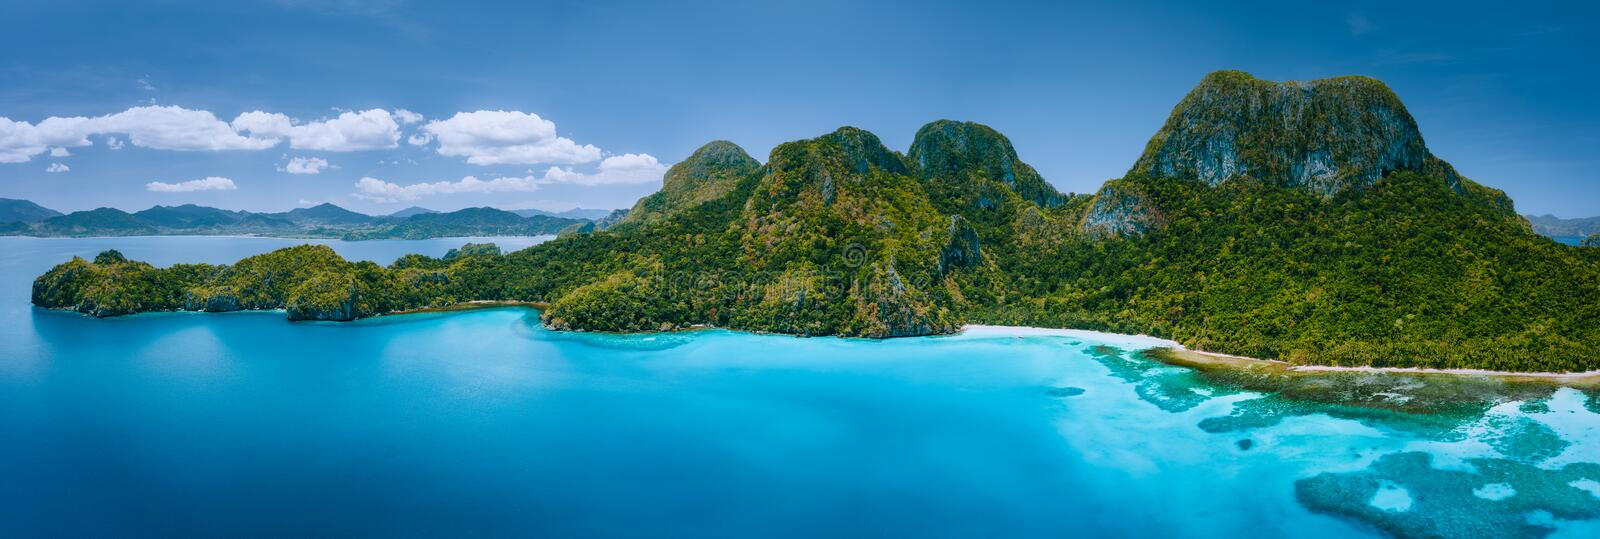 Aerial drone panoramic view of uninhabited tropical island with rugged mountains, rainforest jungle, sandy beaches. Surrounded by blue ocean royalty free stock photos